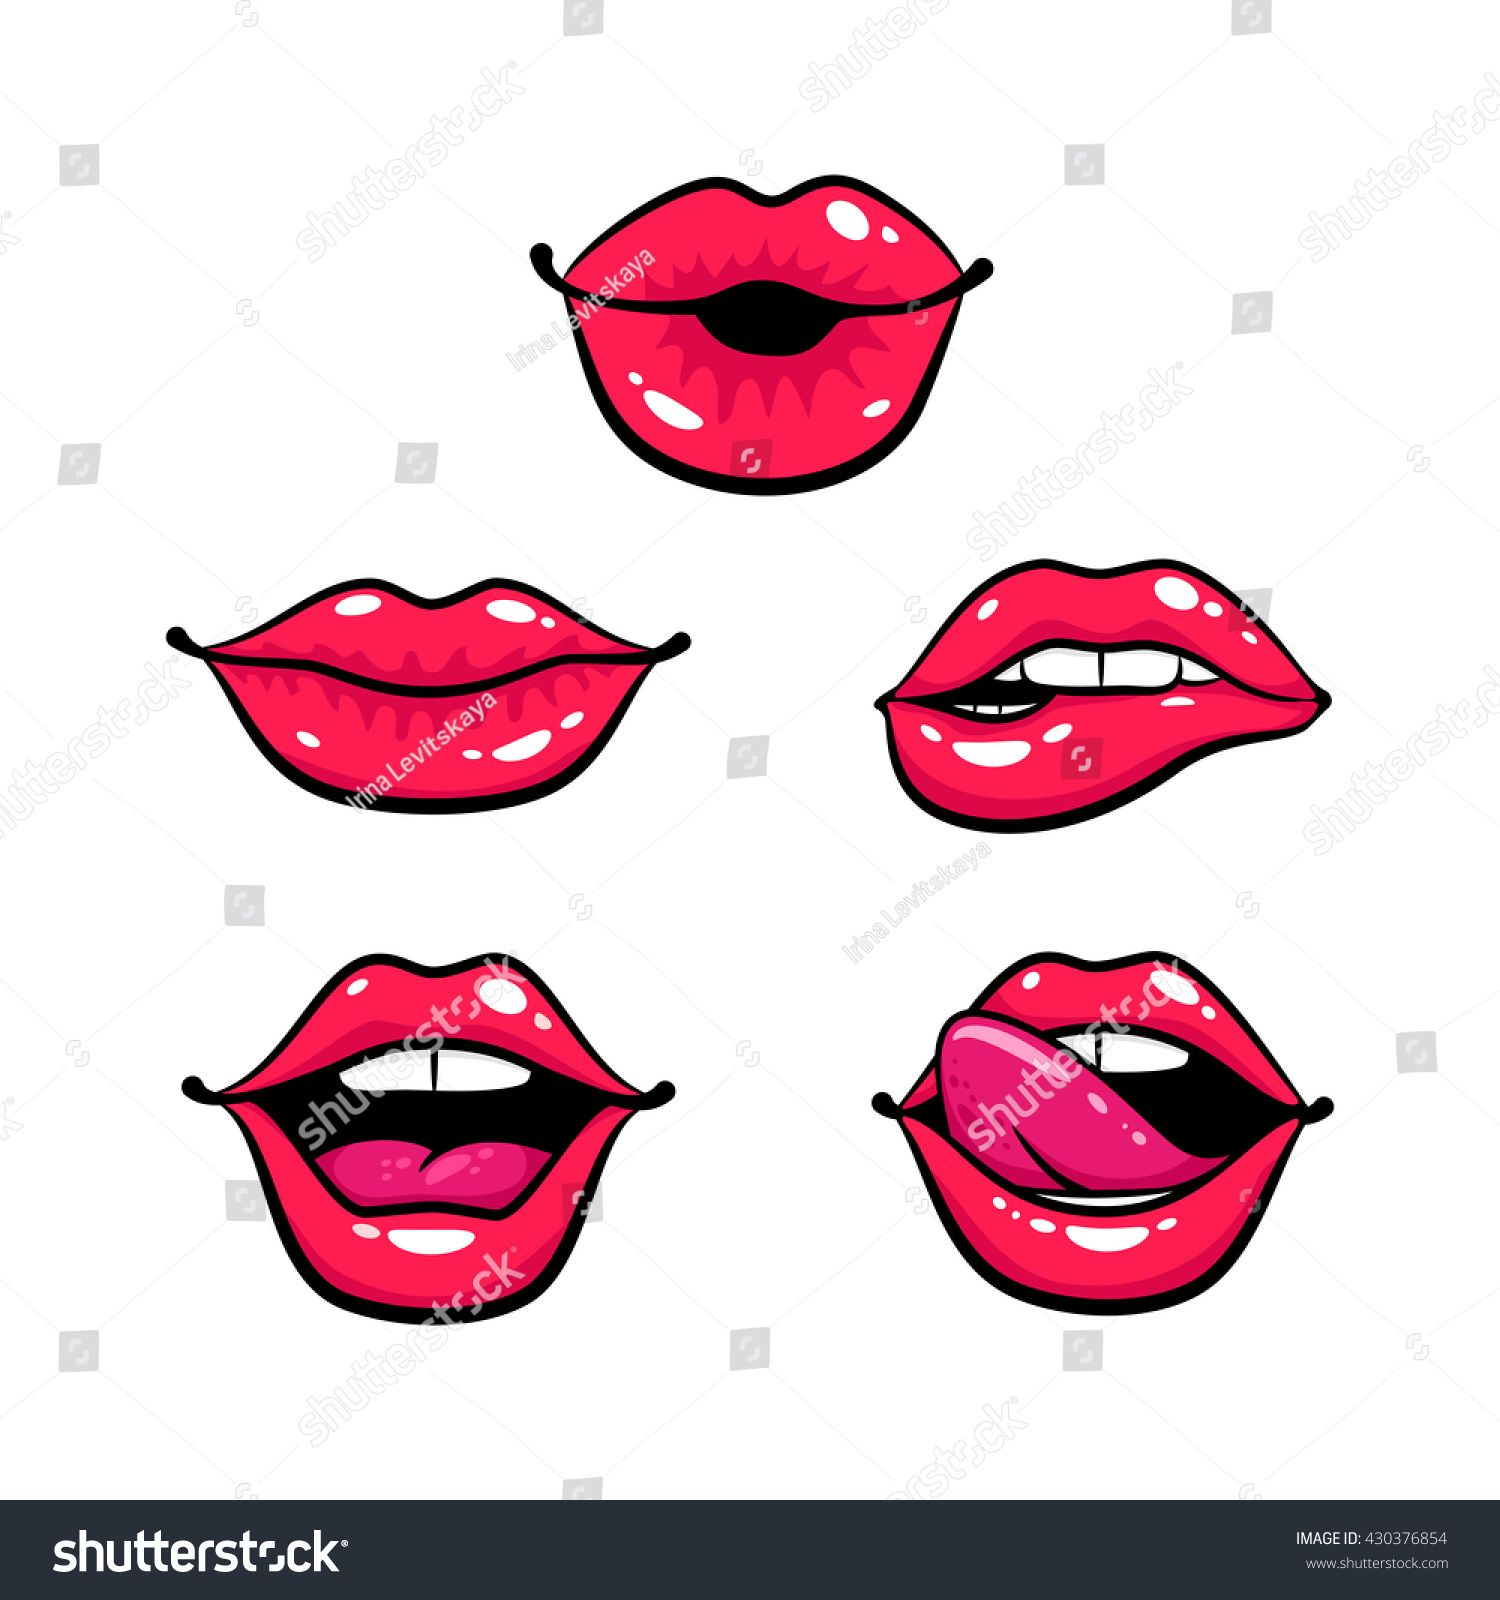 Female lips set. Mouth with a kiss, smile, tongue, teeth